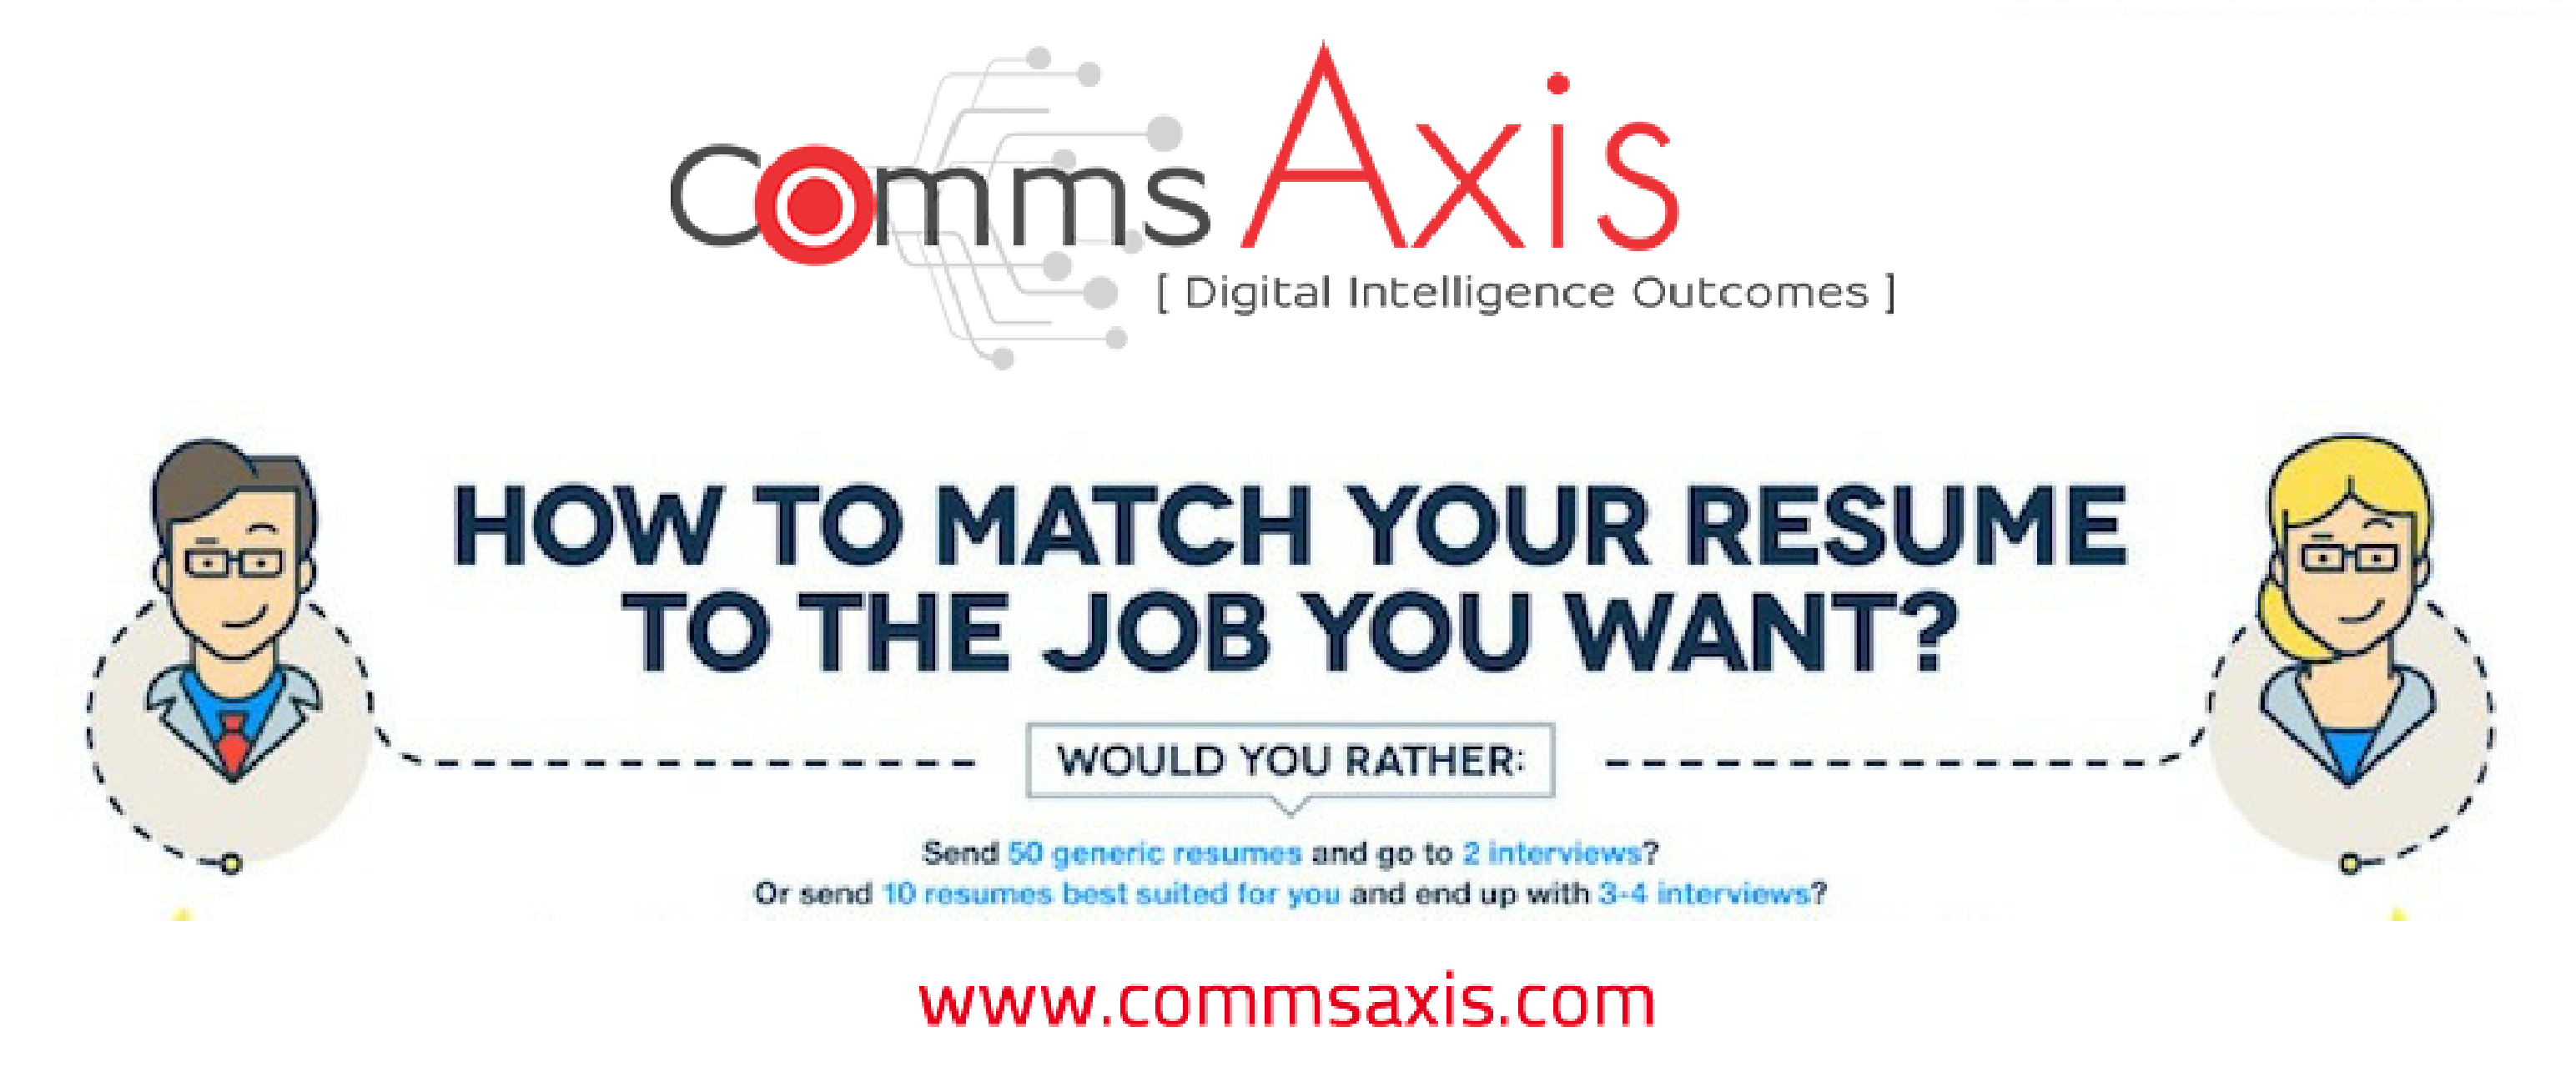 Tailor Your Resume To Land *That* Job | Infographic | Comms Axis : Comms  Axis | Content, Marketing U0026 Sales Combined  Tailor Your Resume